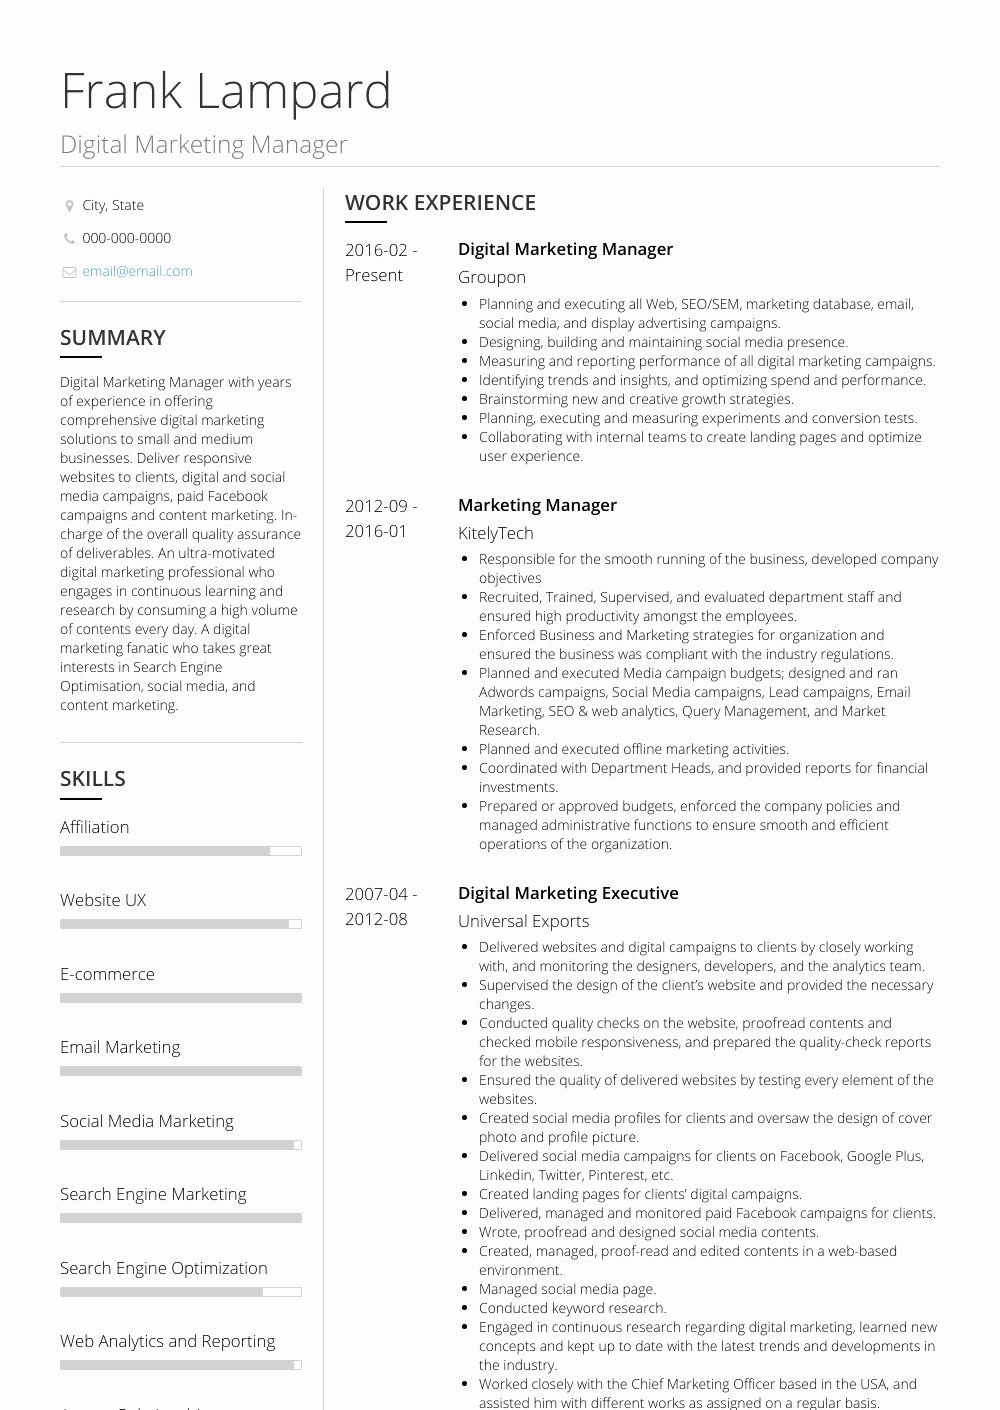 Digital Marketing Resume Sample Luxury Digital Marketing